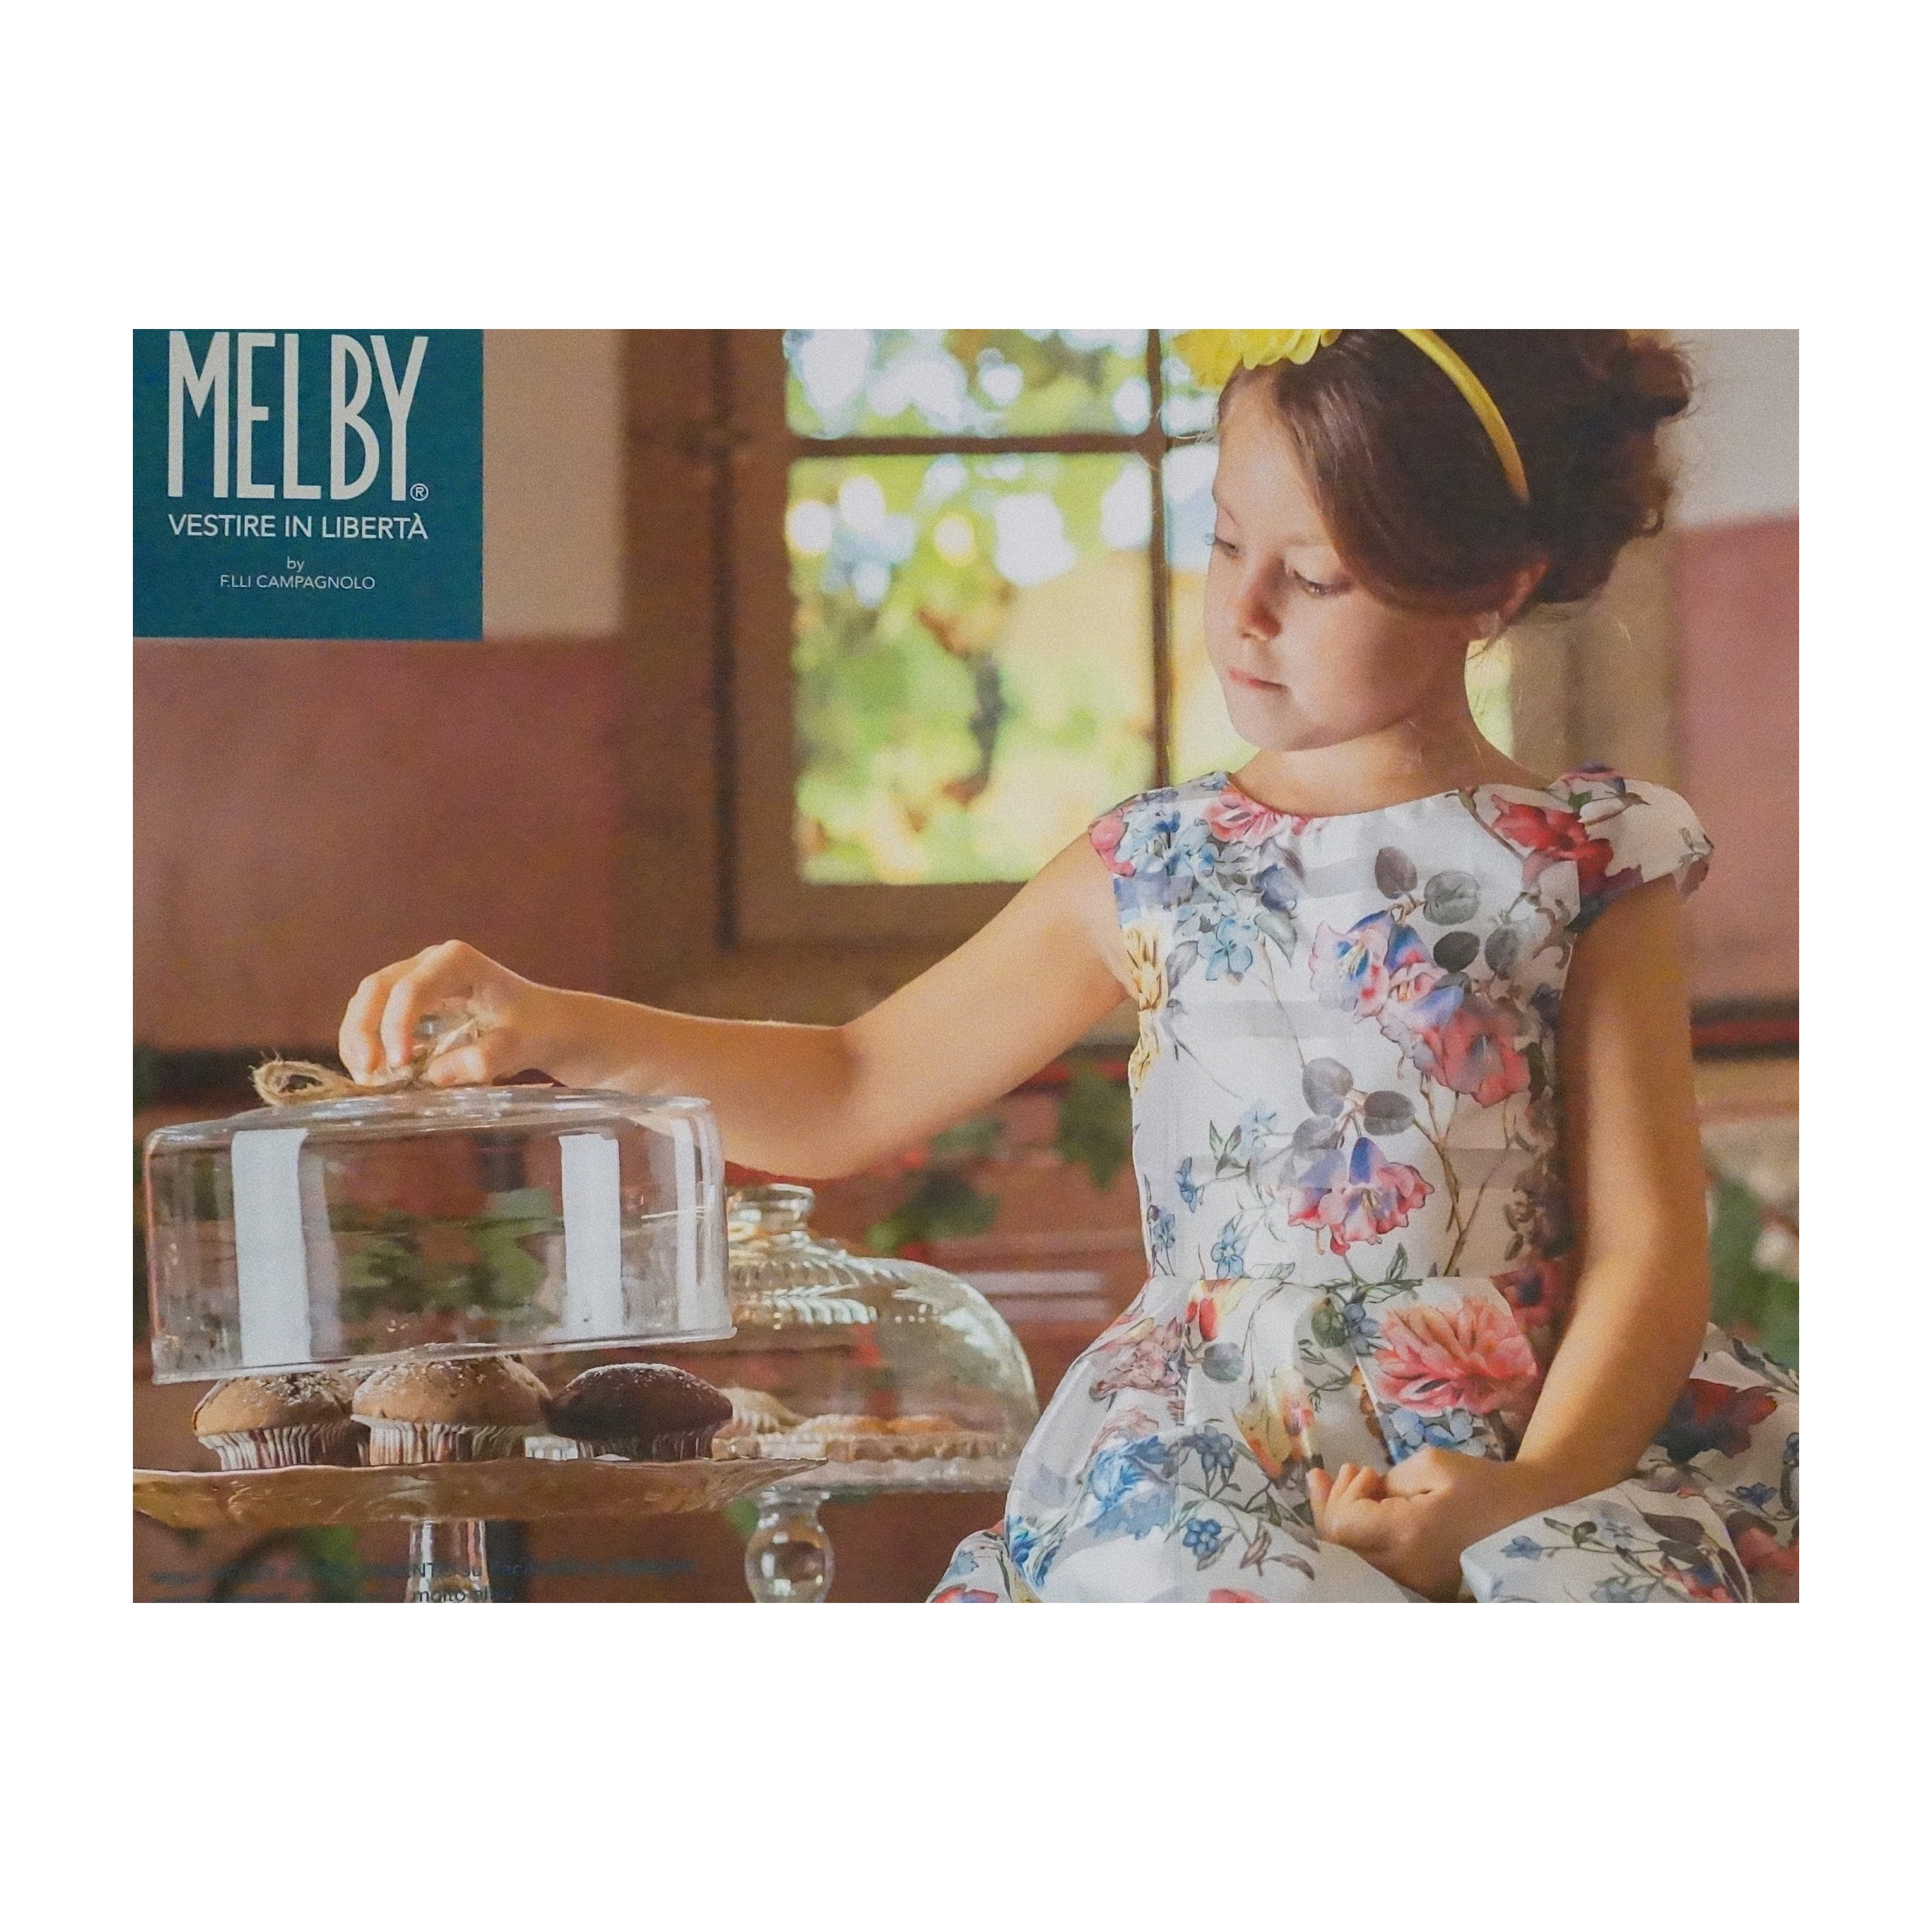 MELBY 1